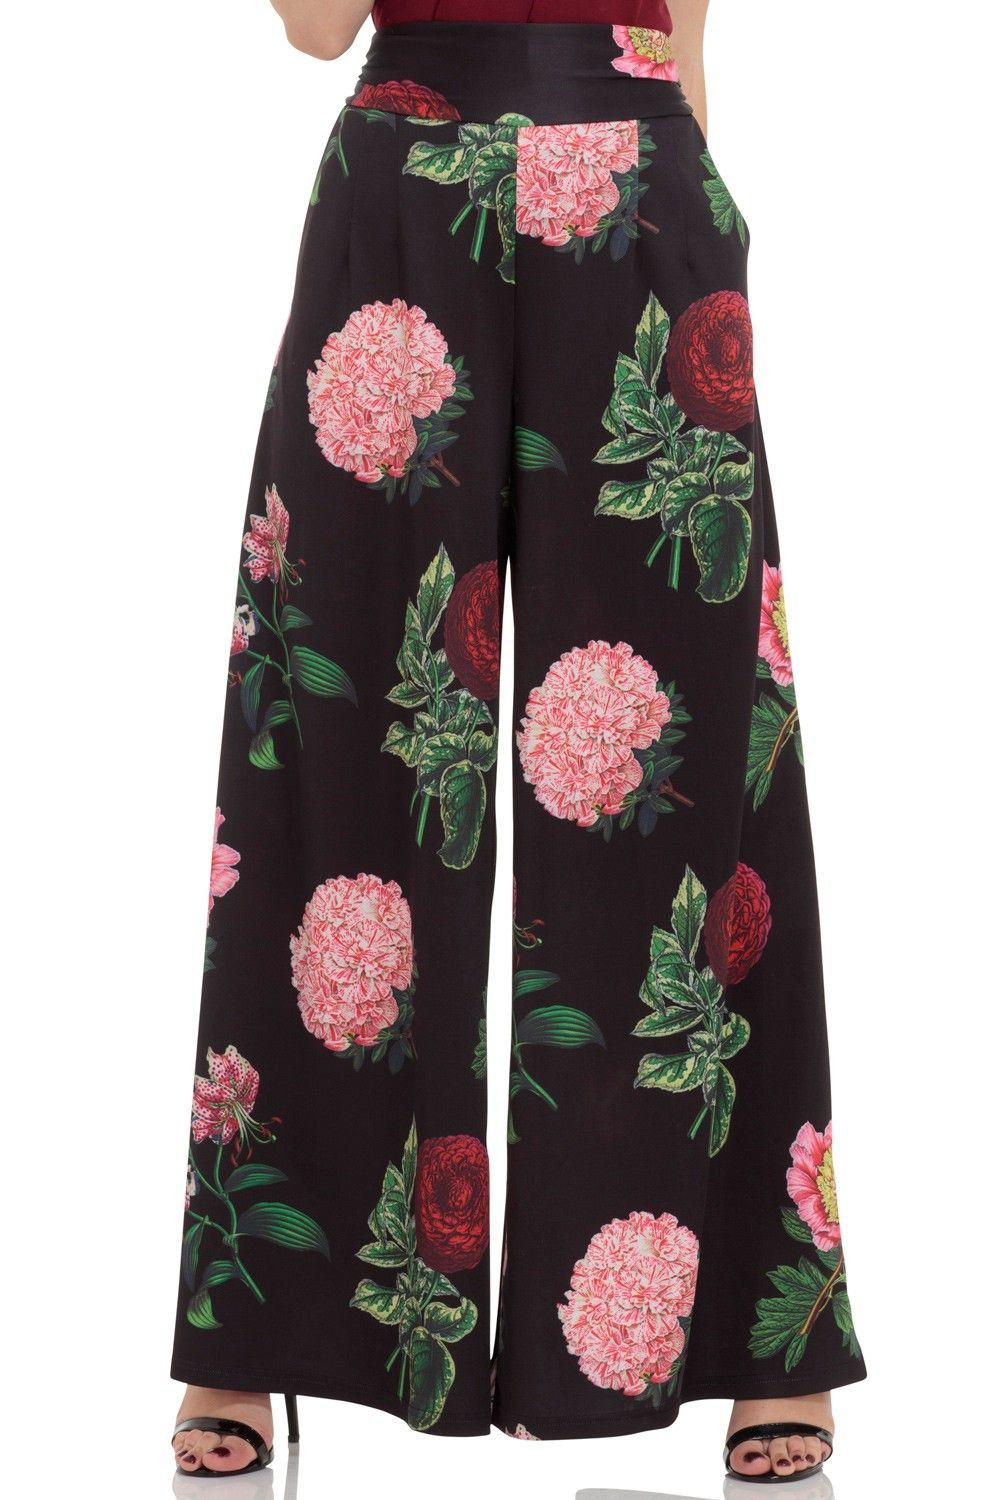 NEW Womens Pink Floral PALAZZO Pants Elasticated Waist Stretch TROUSERS Bottoms